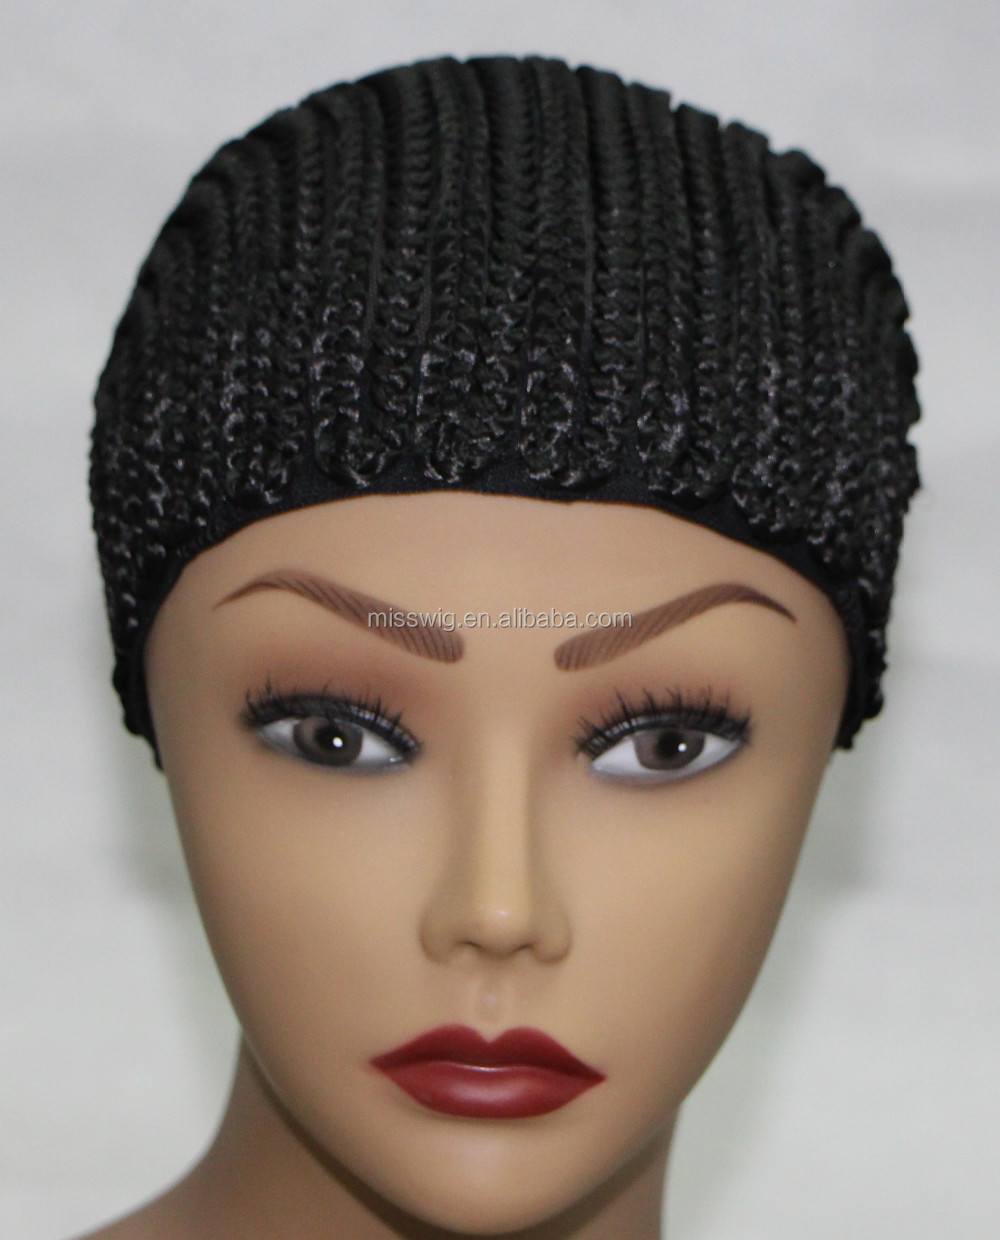 Crochet Hair Cap : 16-m Braid Caps For Crochet Braids Express Cornrow Cap For Black ...